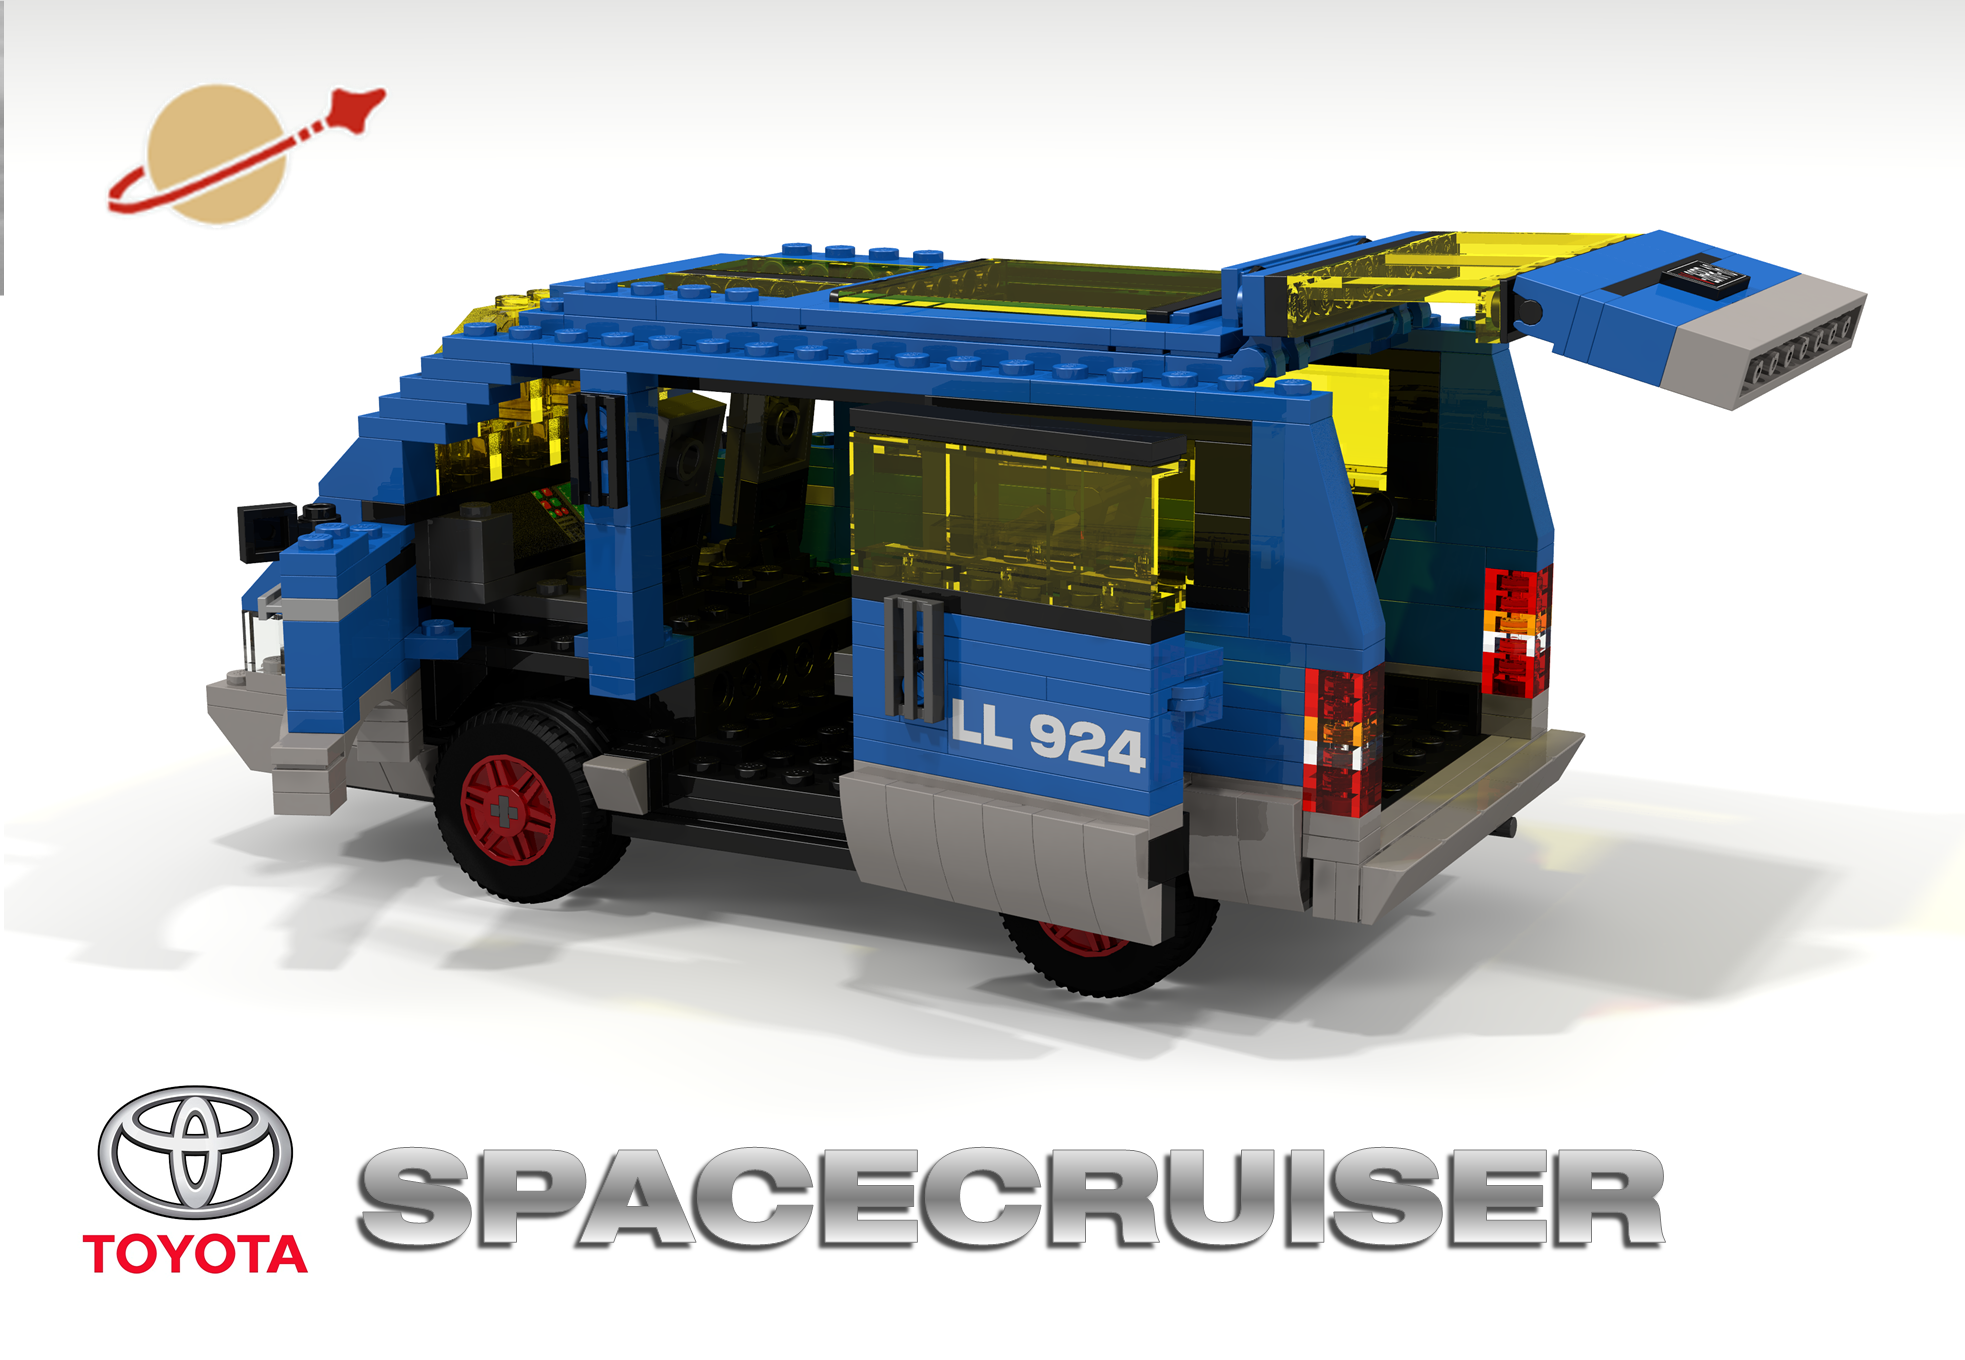 toyota_spacecruiser_ll924_02.png